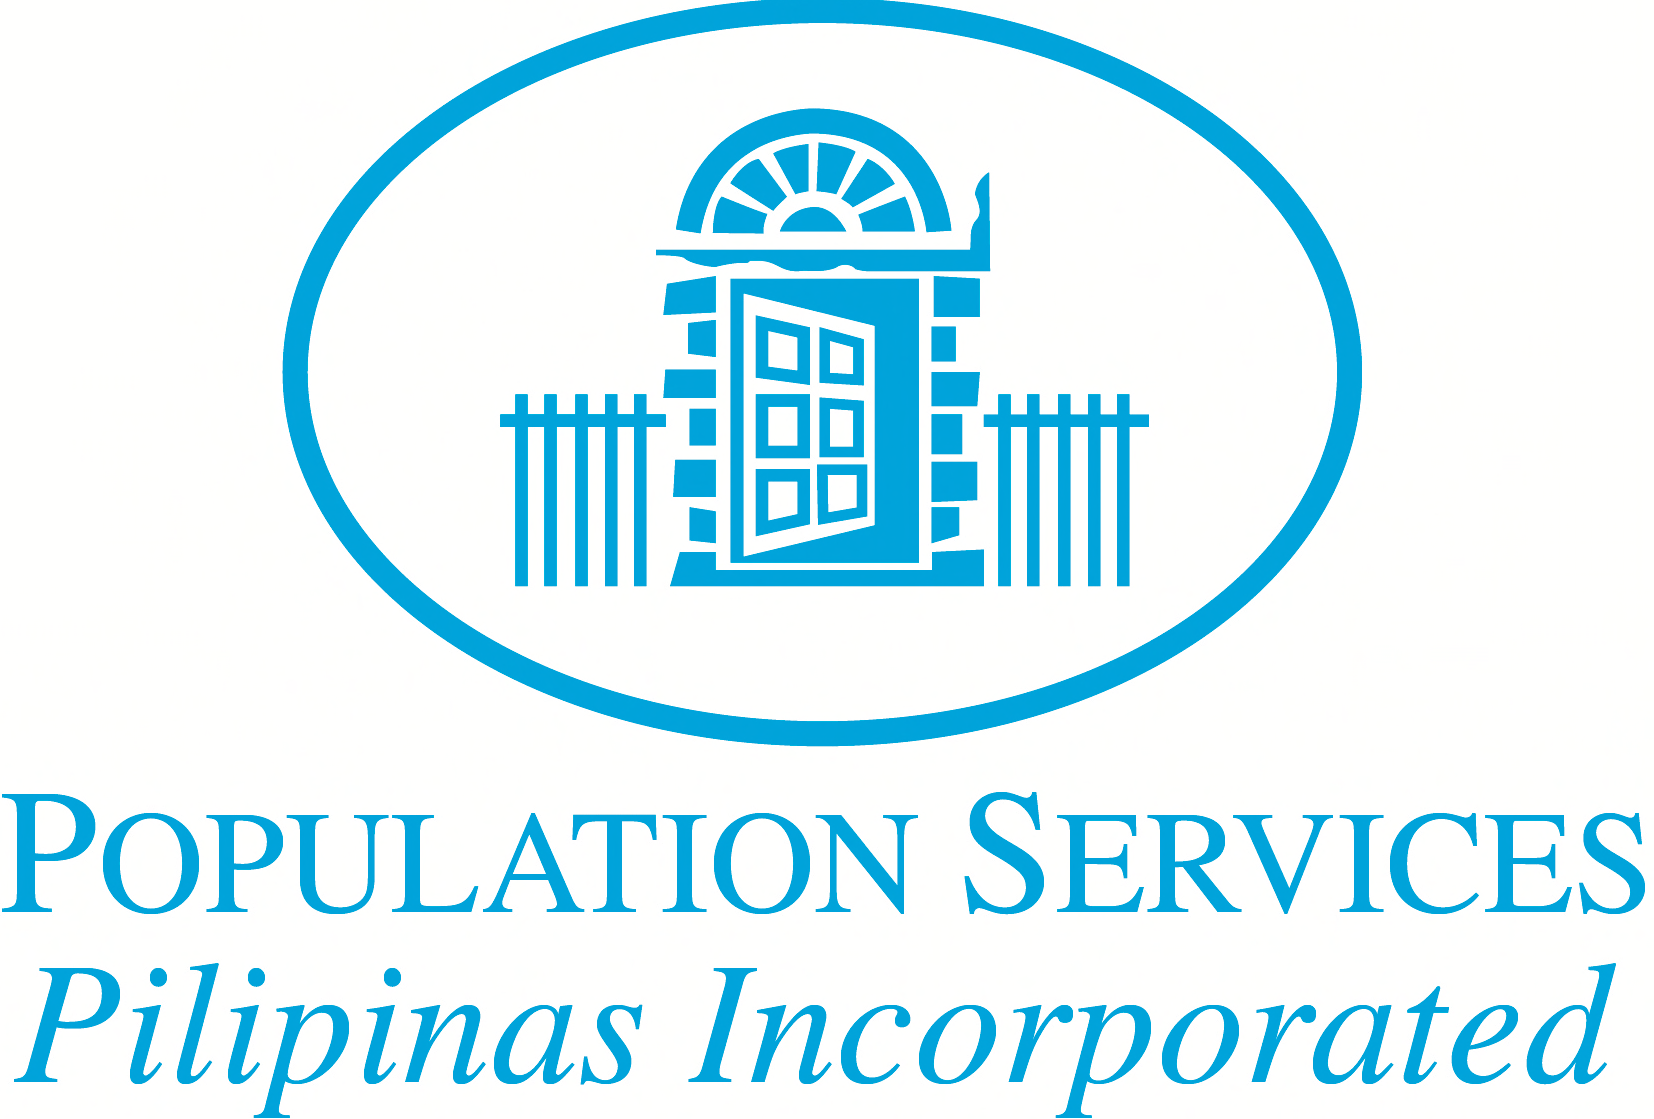 Population Services Pilipinas Incorporated